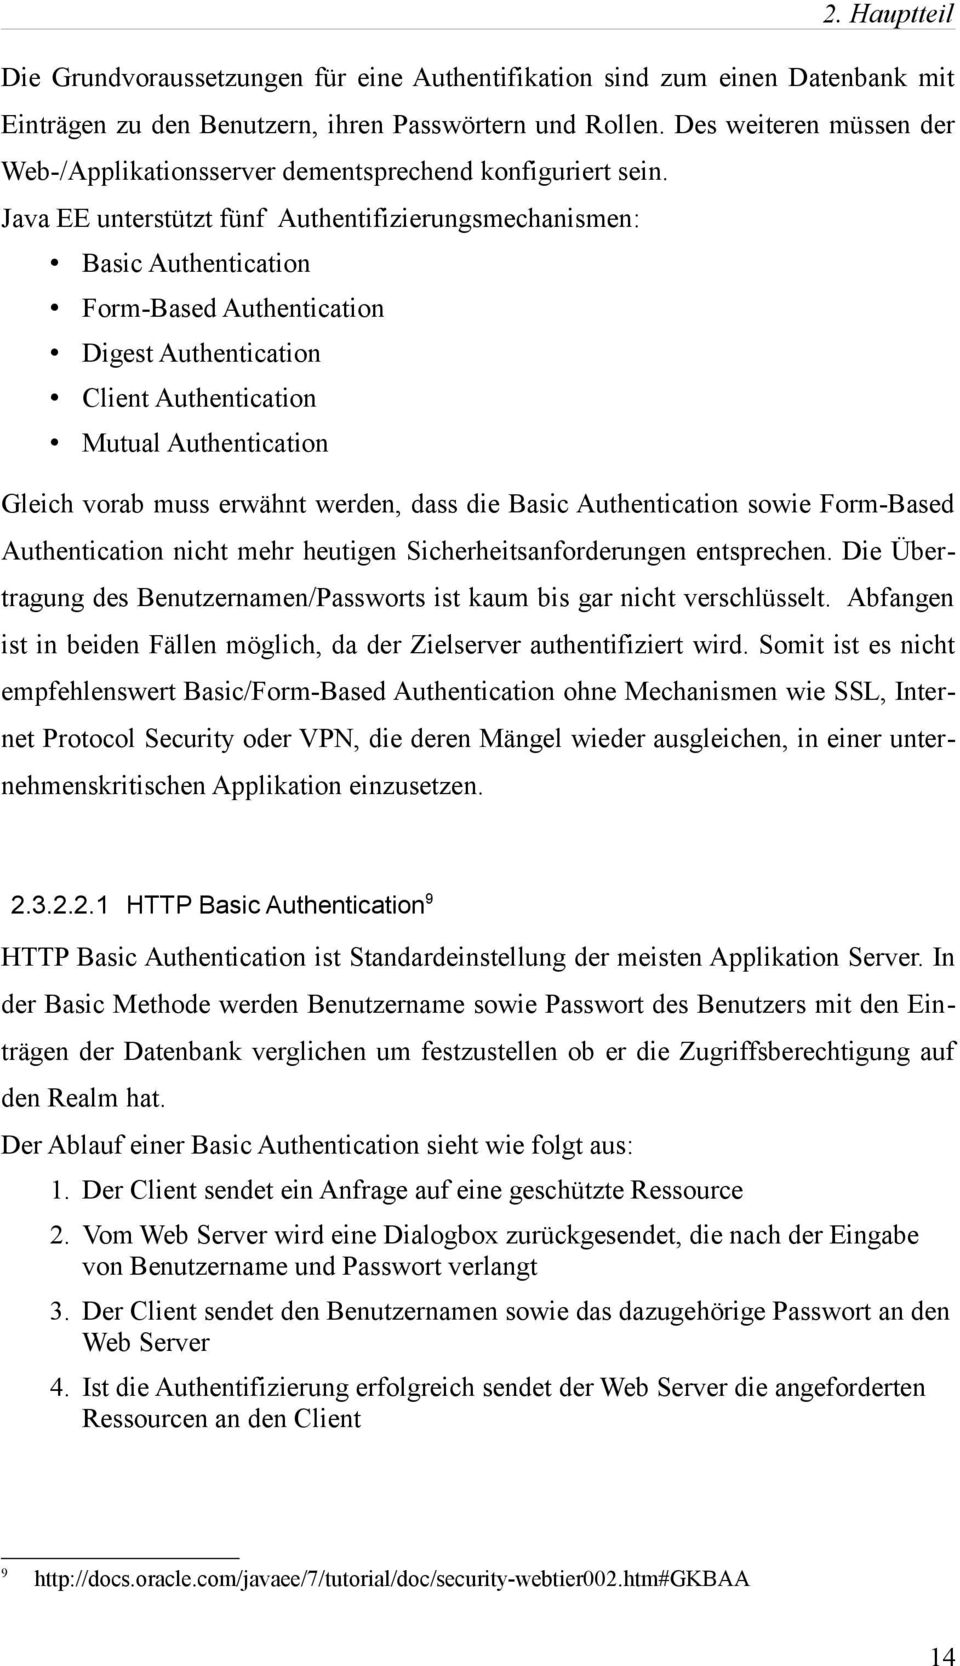 Java EE unterstützt fünf Authentifizierungsmechanismen: Basic Authentication Form-Based Authentication Digest Authentication Client Authentication Mutual Authentication Gleich vorab muss erwähnt